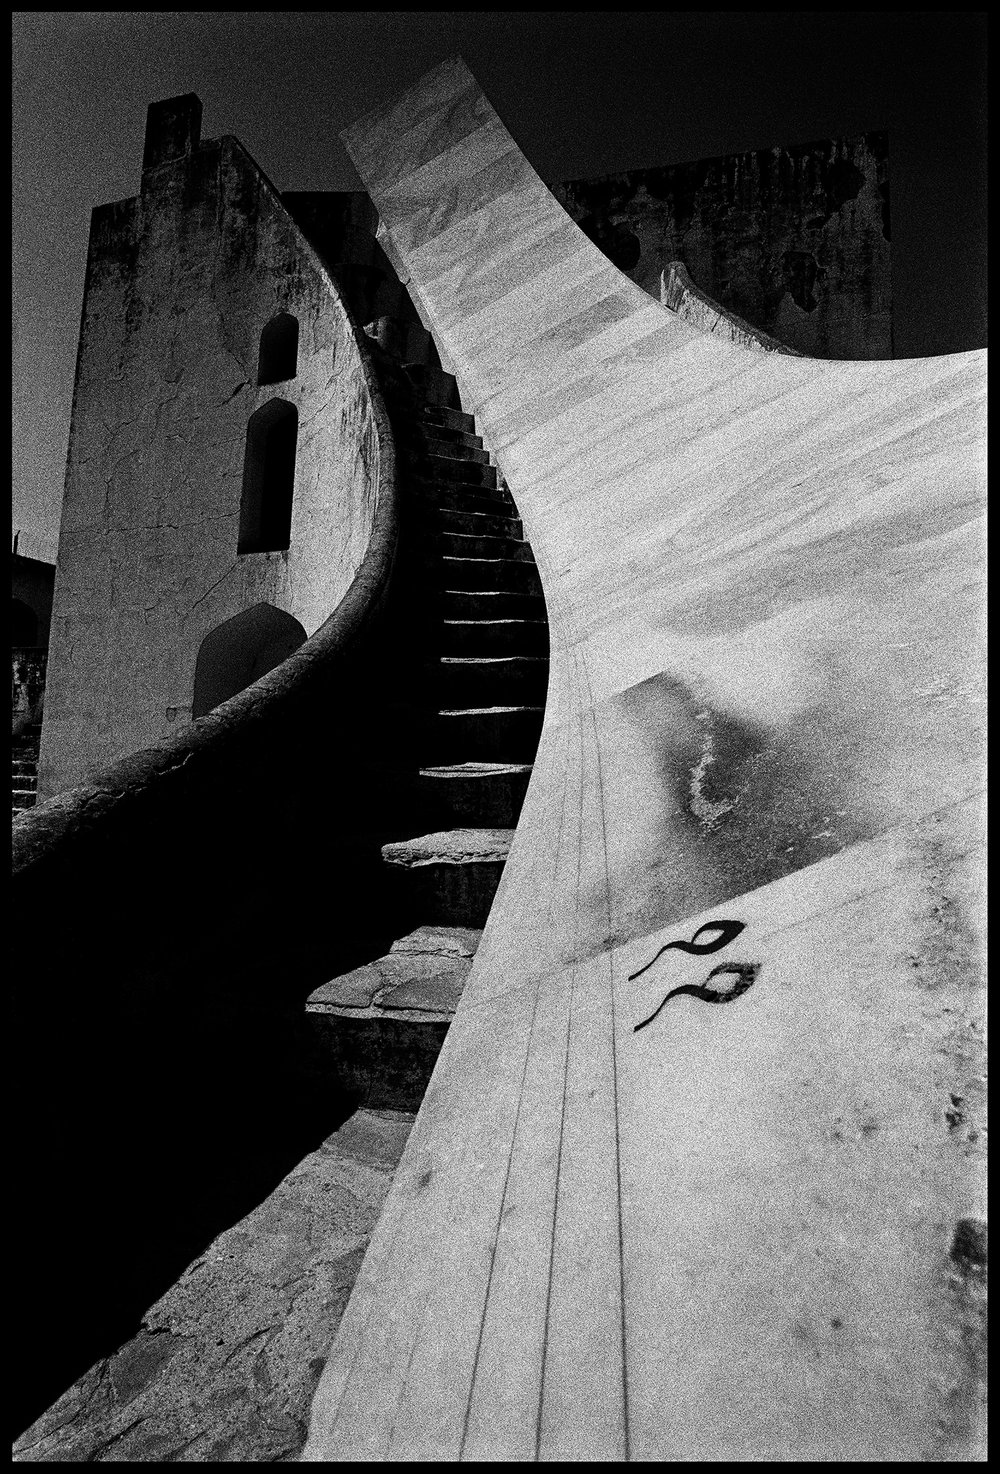 132_GALLERY_Jantar-Mantar-83_SURFACEMAG-SIMON-CHAPUT-PHOTOGRAPHY.jpg